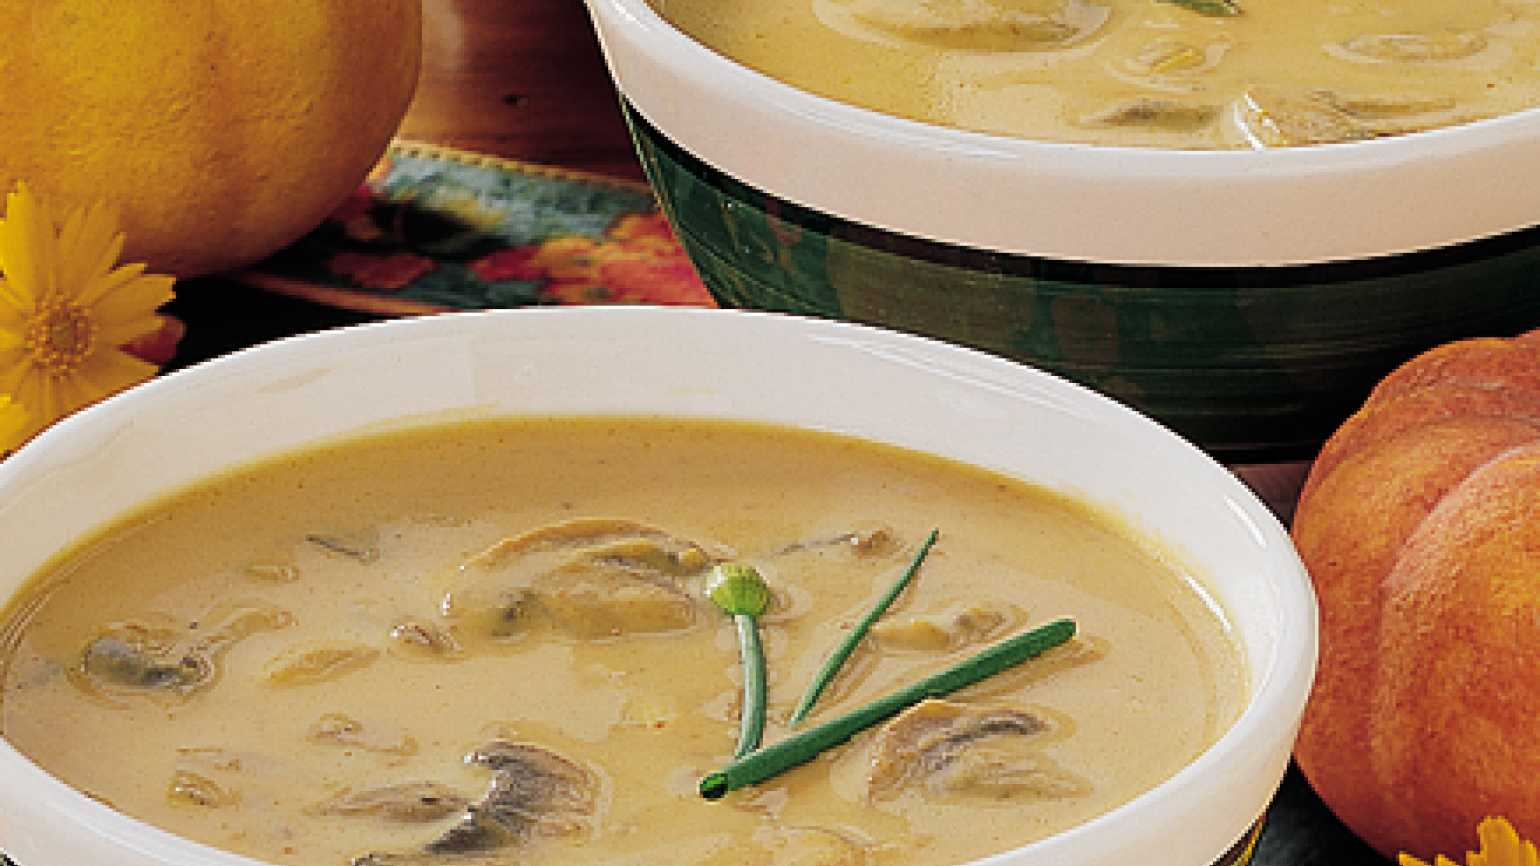 Soup recipes: curried pumpkin soup